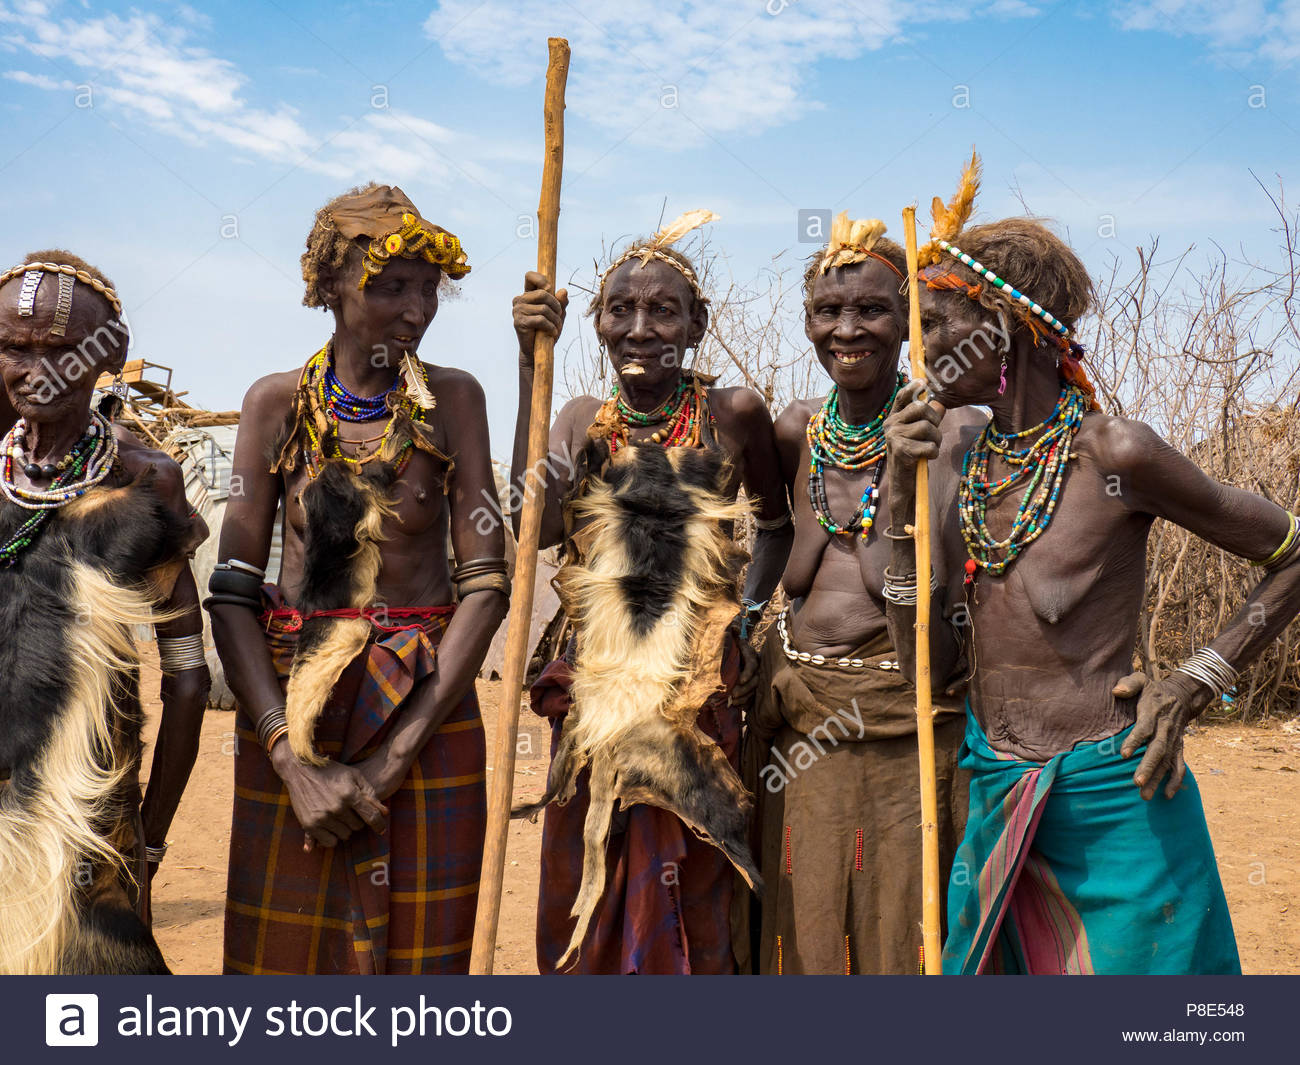 Old women in the village of the Daasanach, Ethiopia - Stock Image